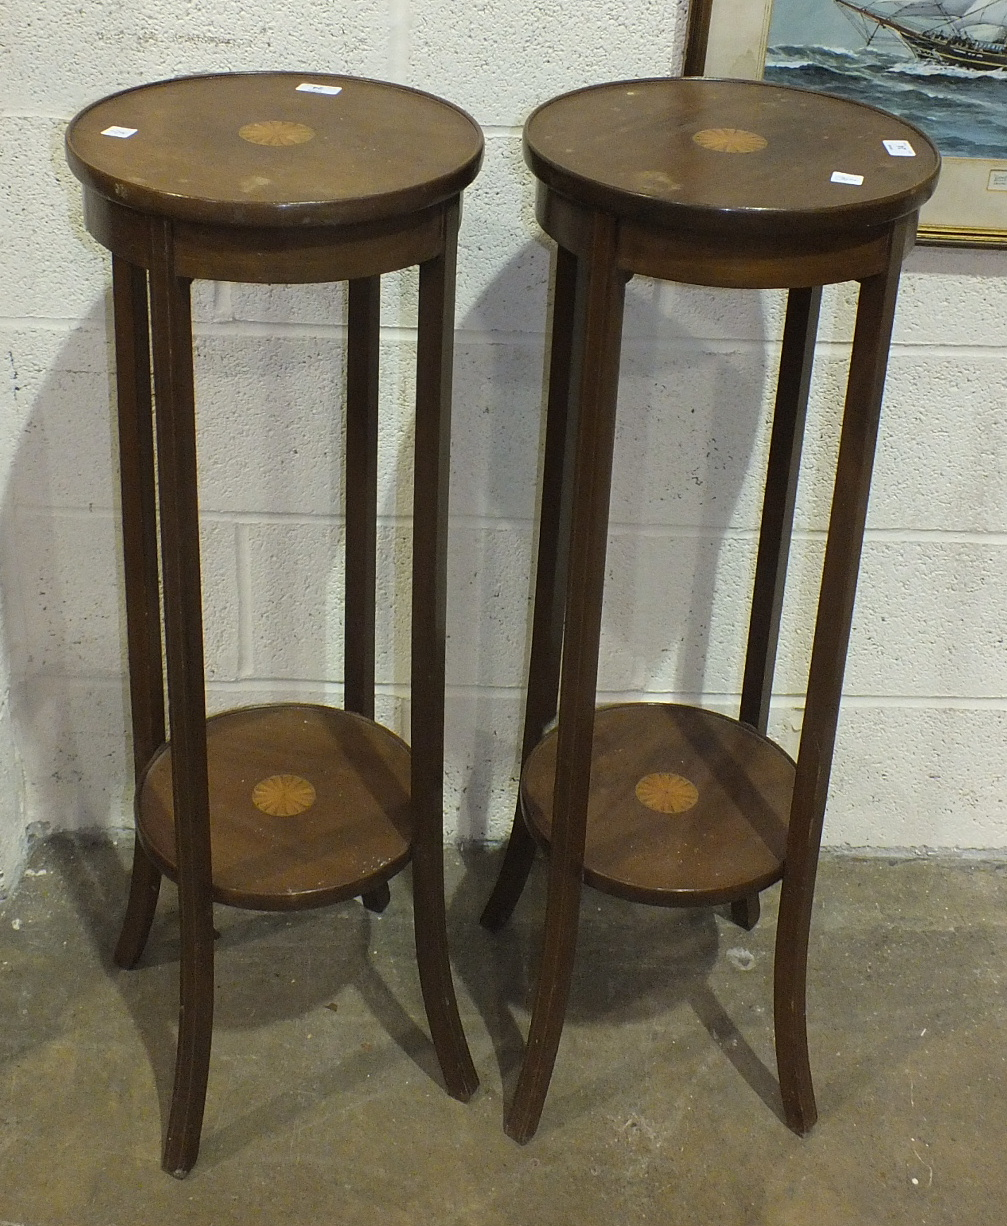 Lot 24 - A pair of Edwardian inlaid mahogany circular two-tier jardinières on shaped supports, 34cm diameter,